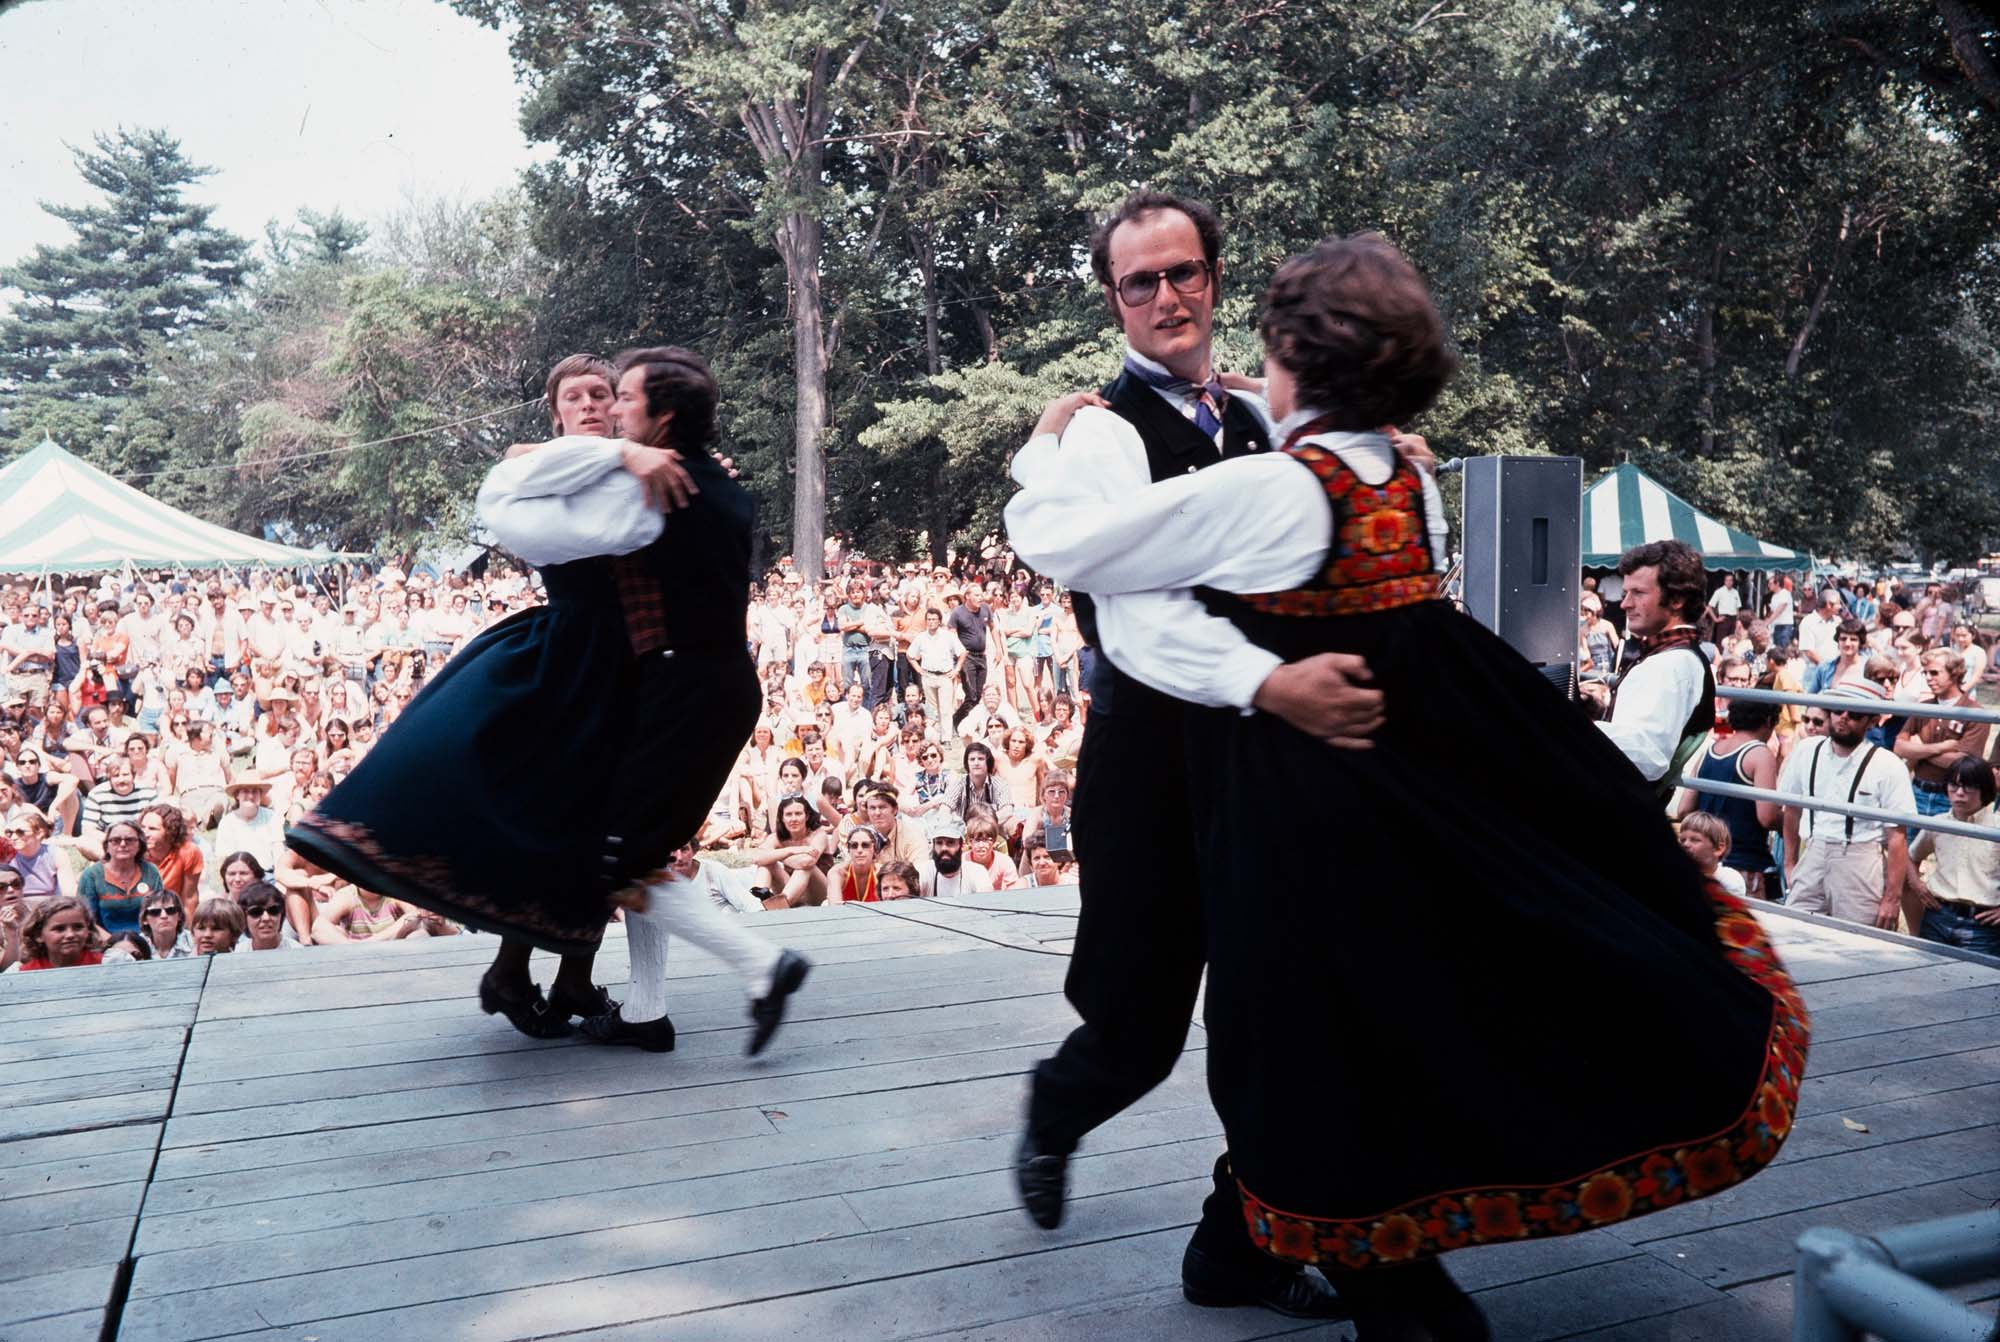 photo of scandinavian dancers in traditional clothing, on stage at a festival in 1974